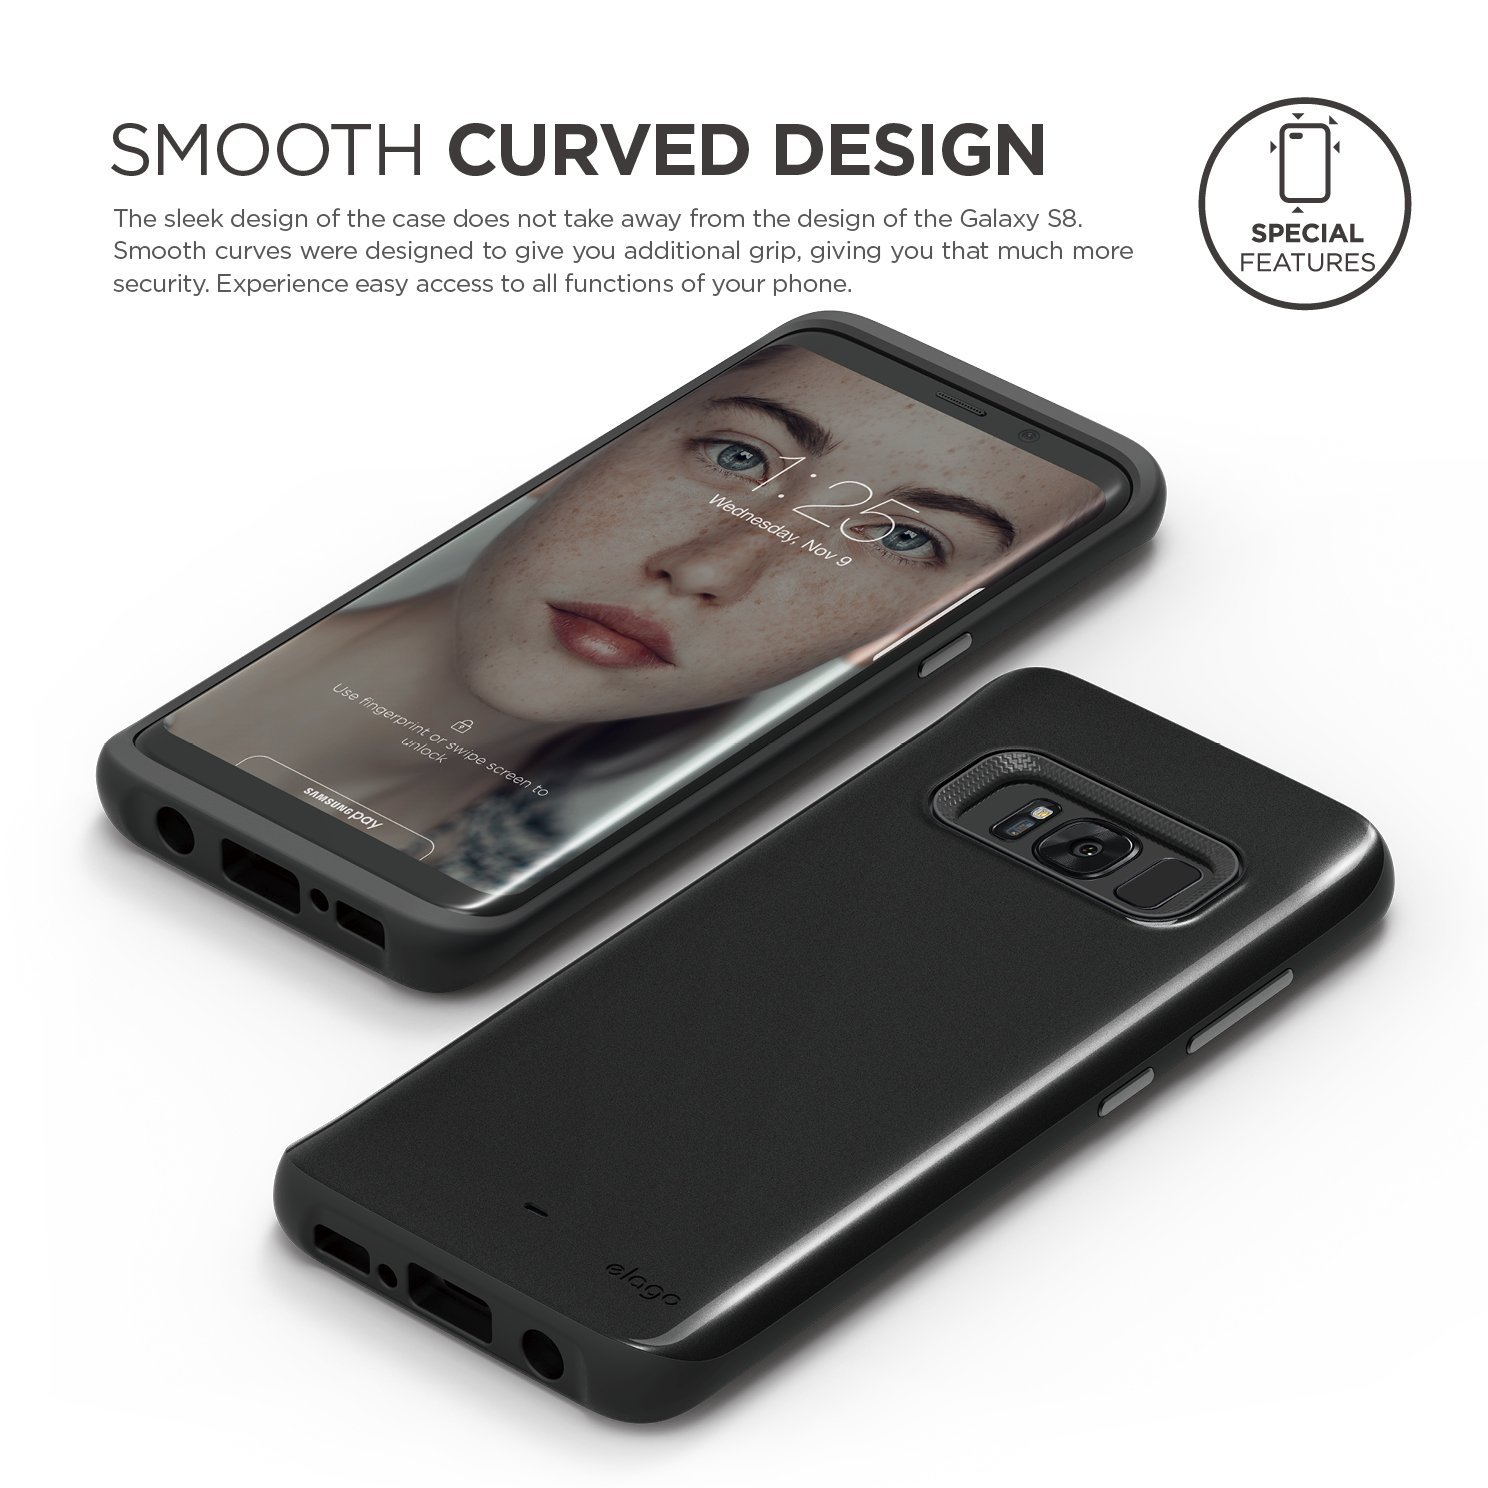 Hybrid Grip Case For Galaxy S8 Midnight Black Elago Europe Samsung Product Features